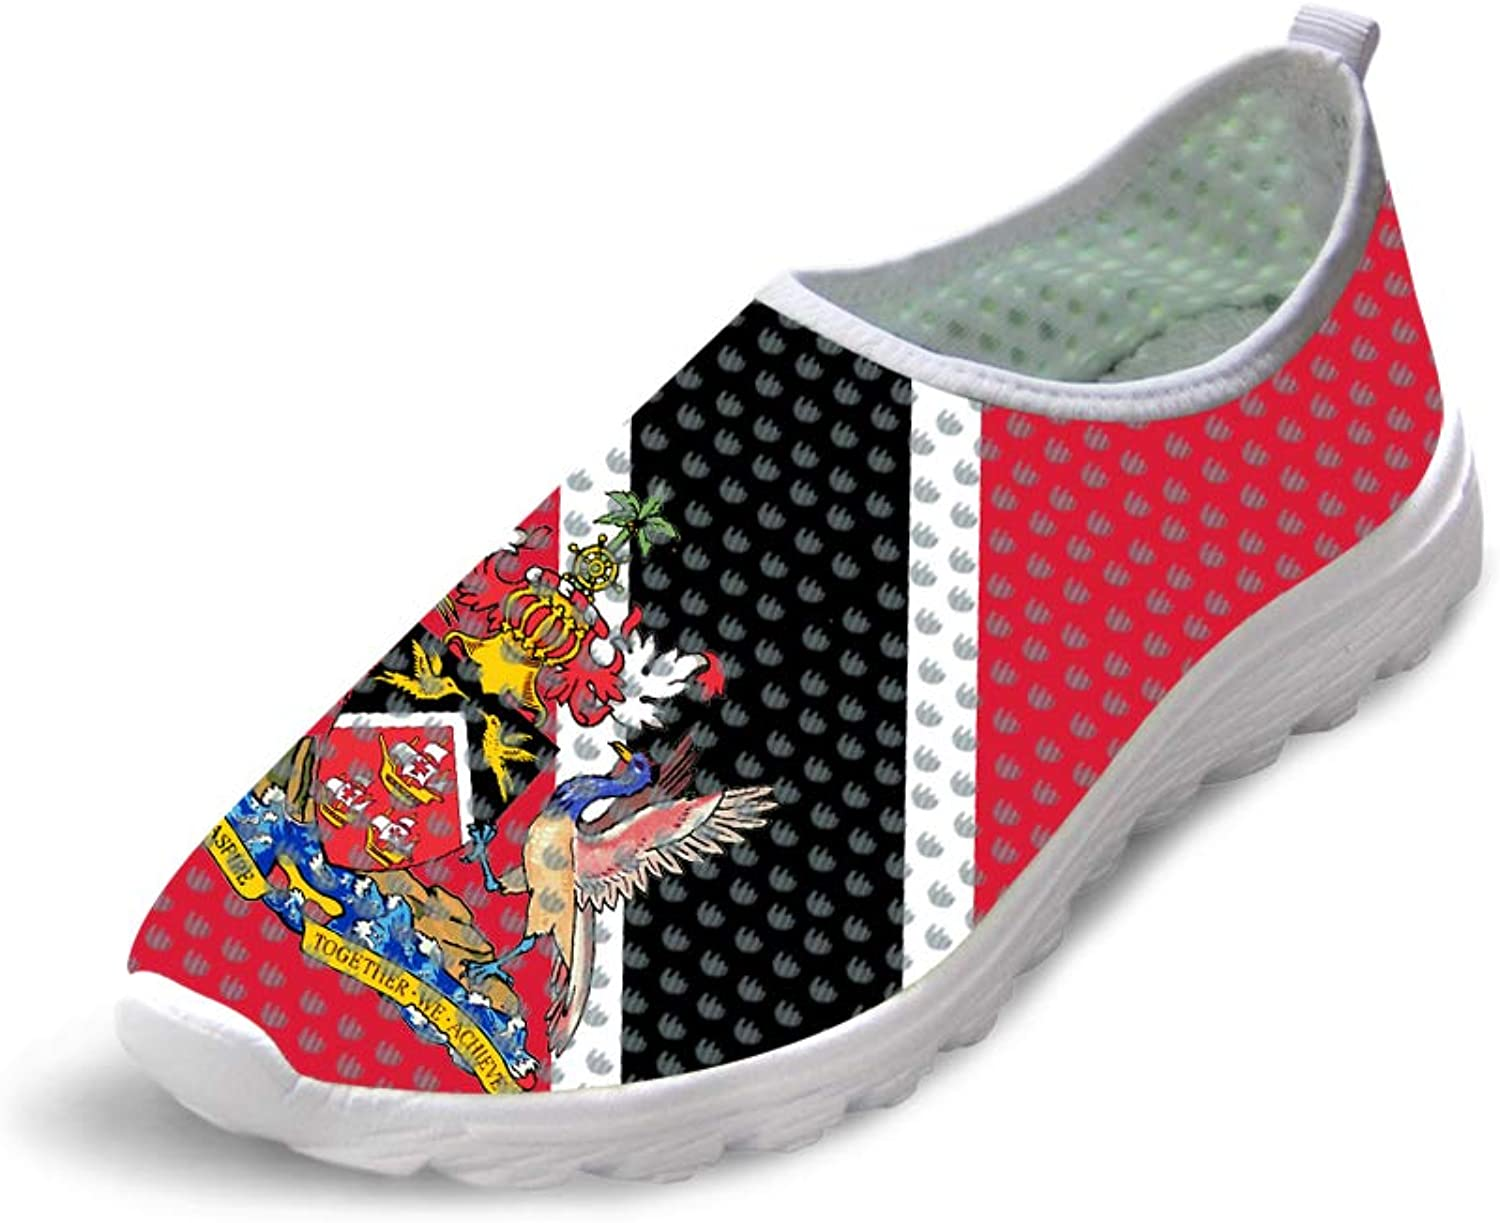 Owaheson Trail Runner Running shoes Casual Sneakers Trinidad and Tobago Flag National Emblem